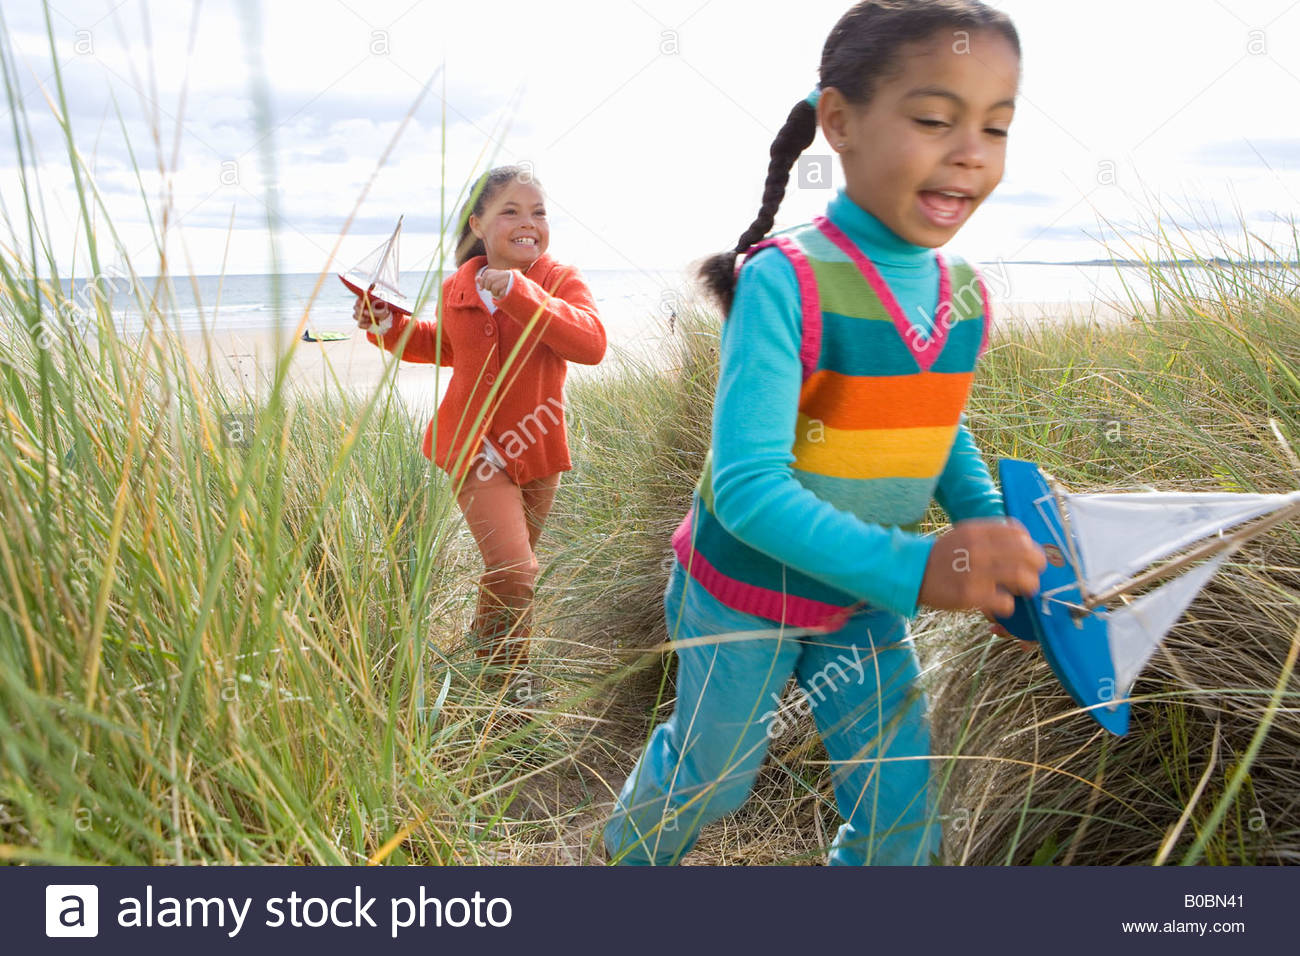 Sisters 5-9 with toy boats on sand dune blurred motion - Stock Image